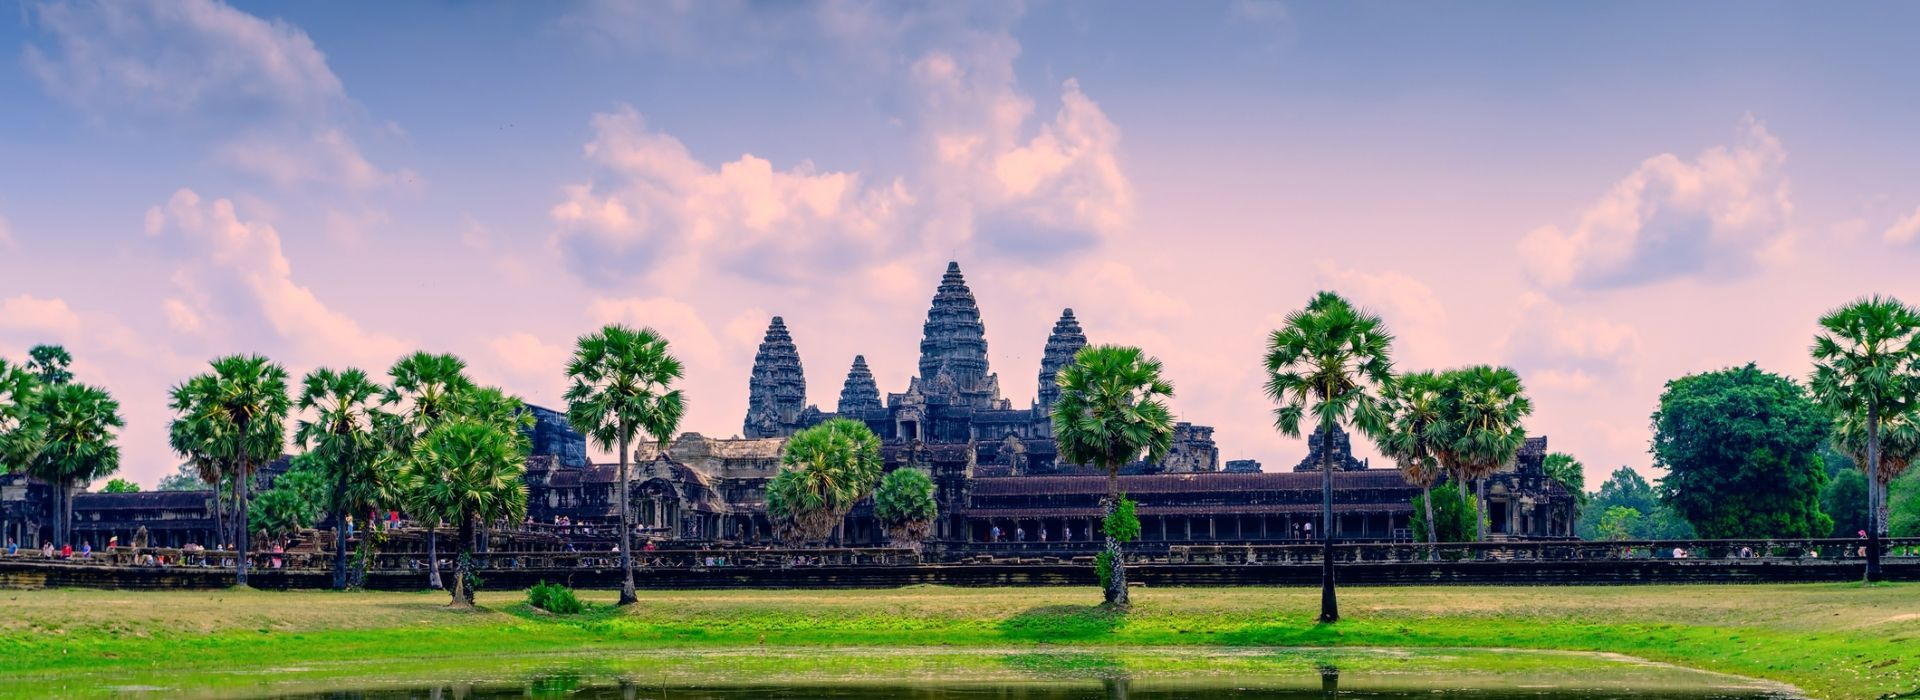 City sightseeing Tours in Siem Reap